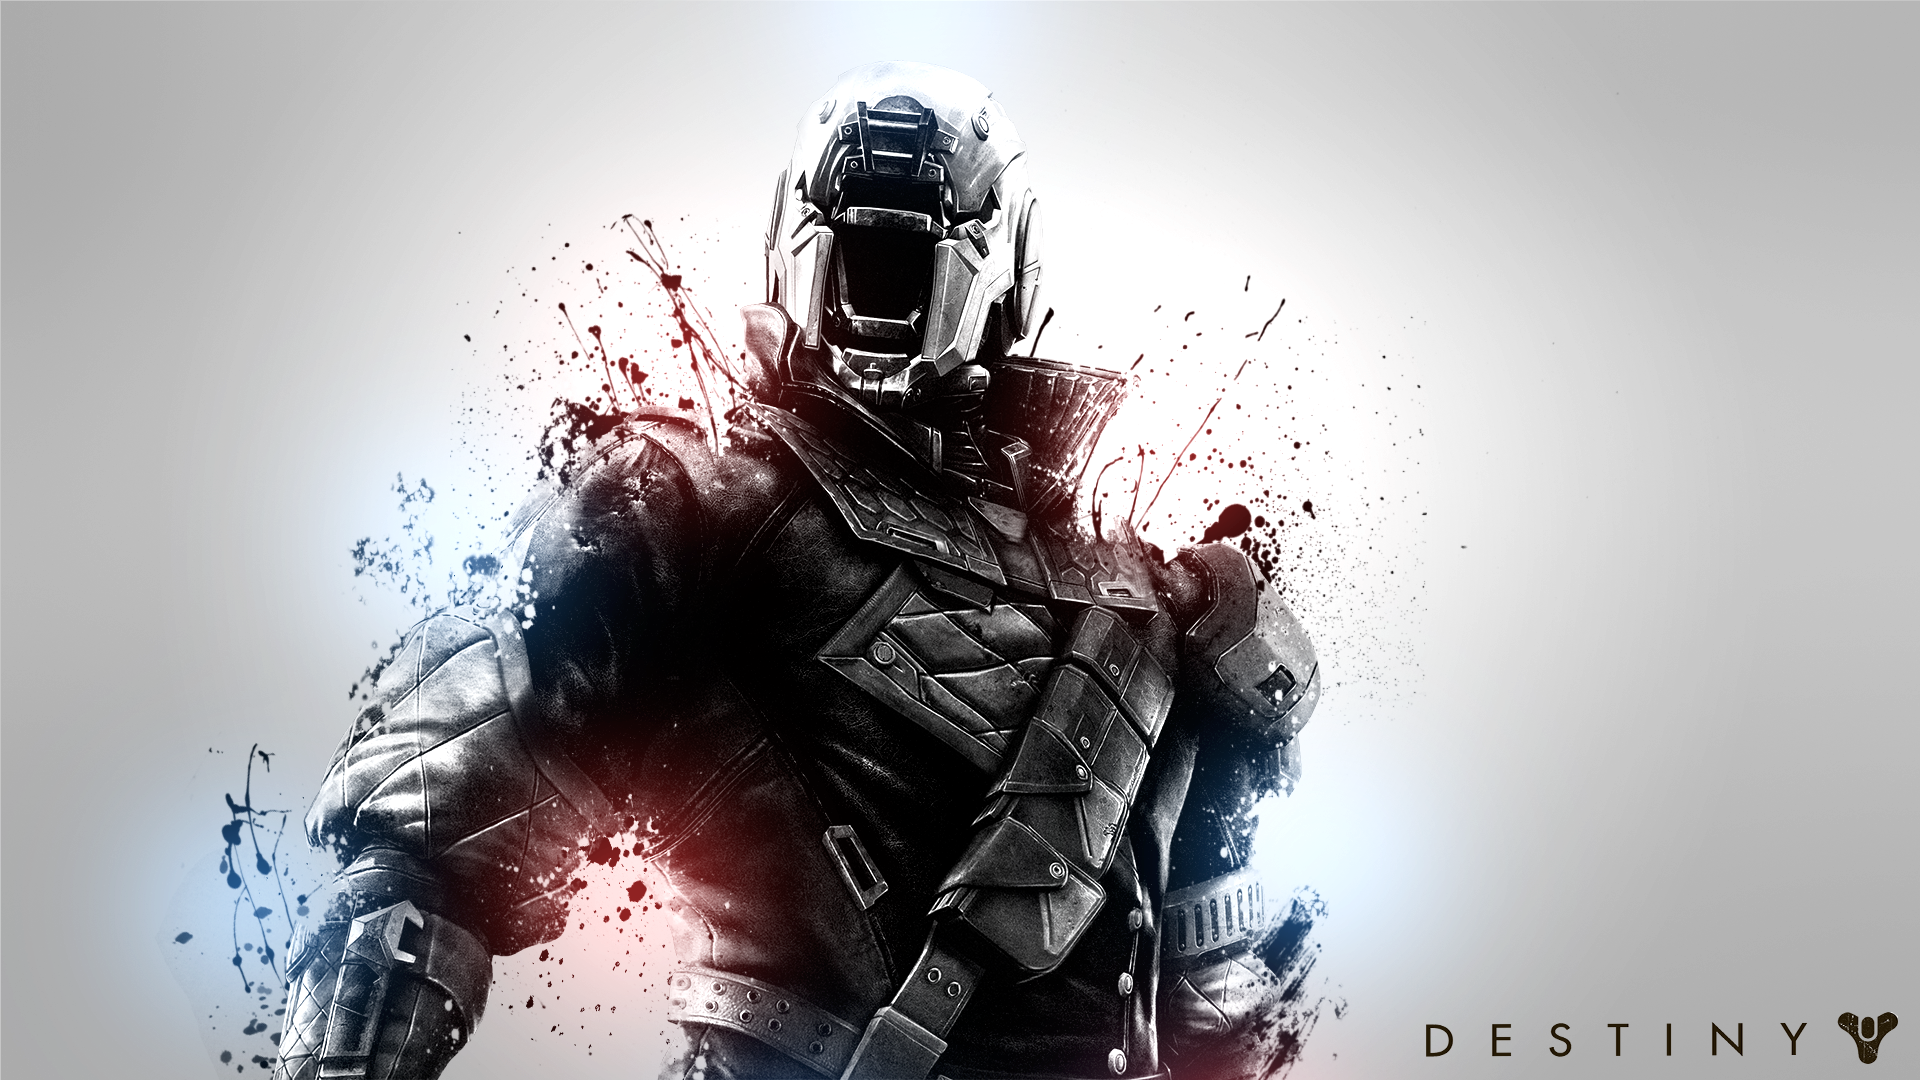 Destiny wallpapers movie hd wallpapers - Walpepar photos ...